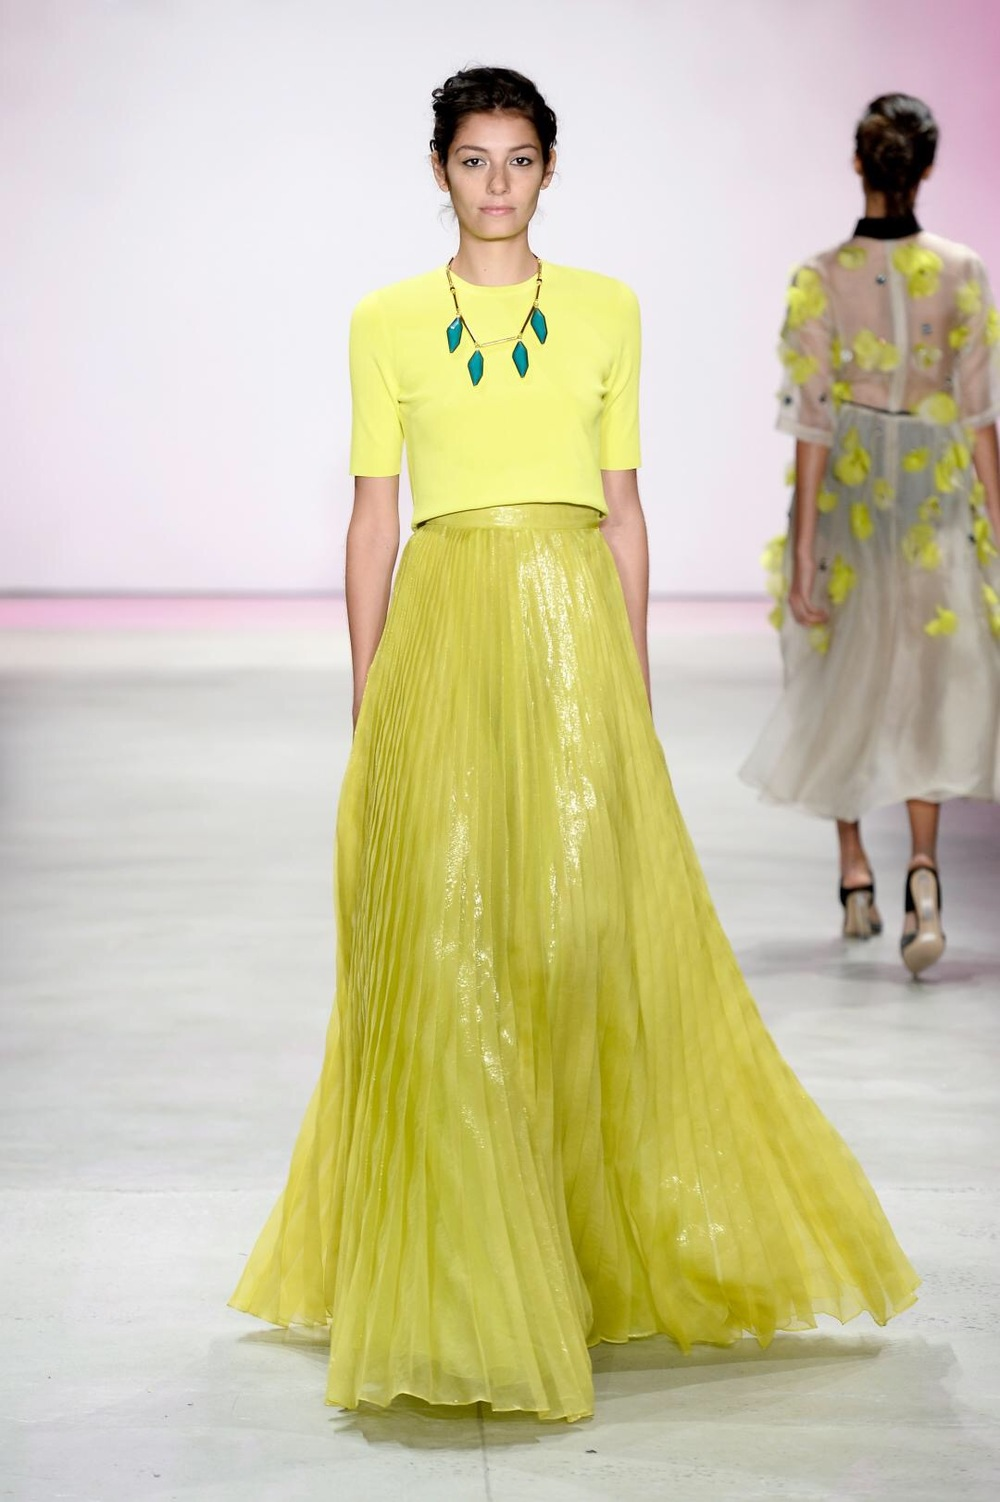 Emily Blanco displays a yellow runway look from Lela Rose.